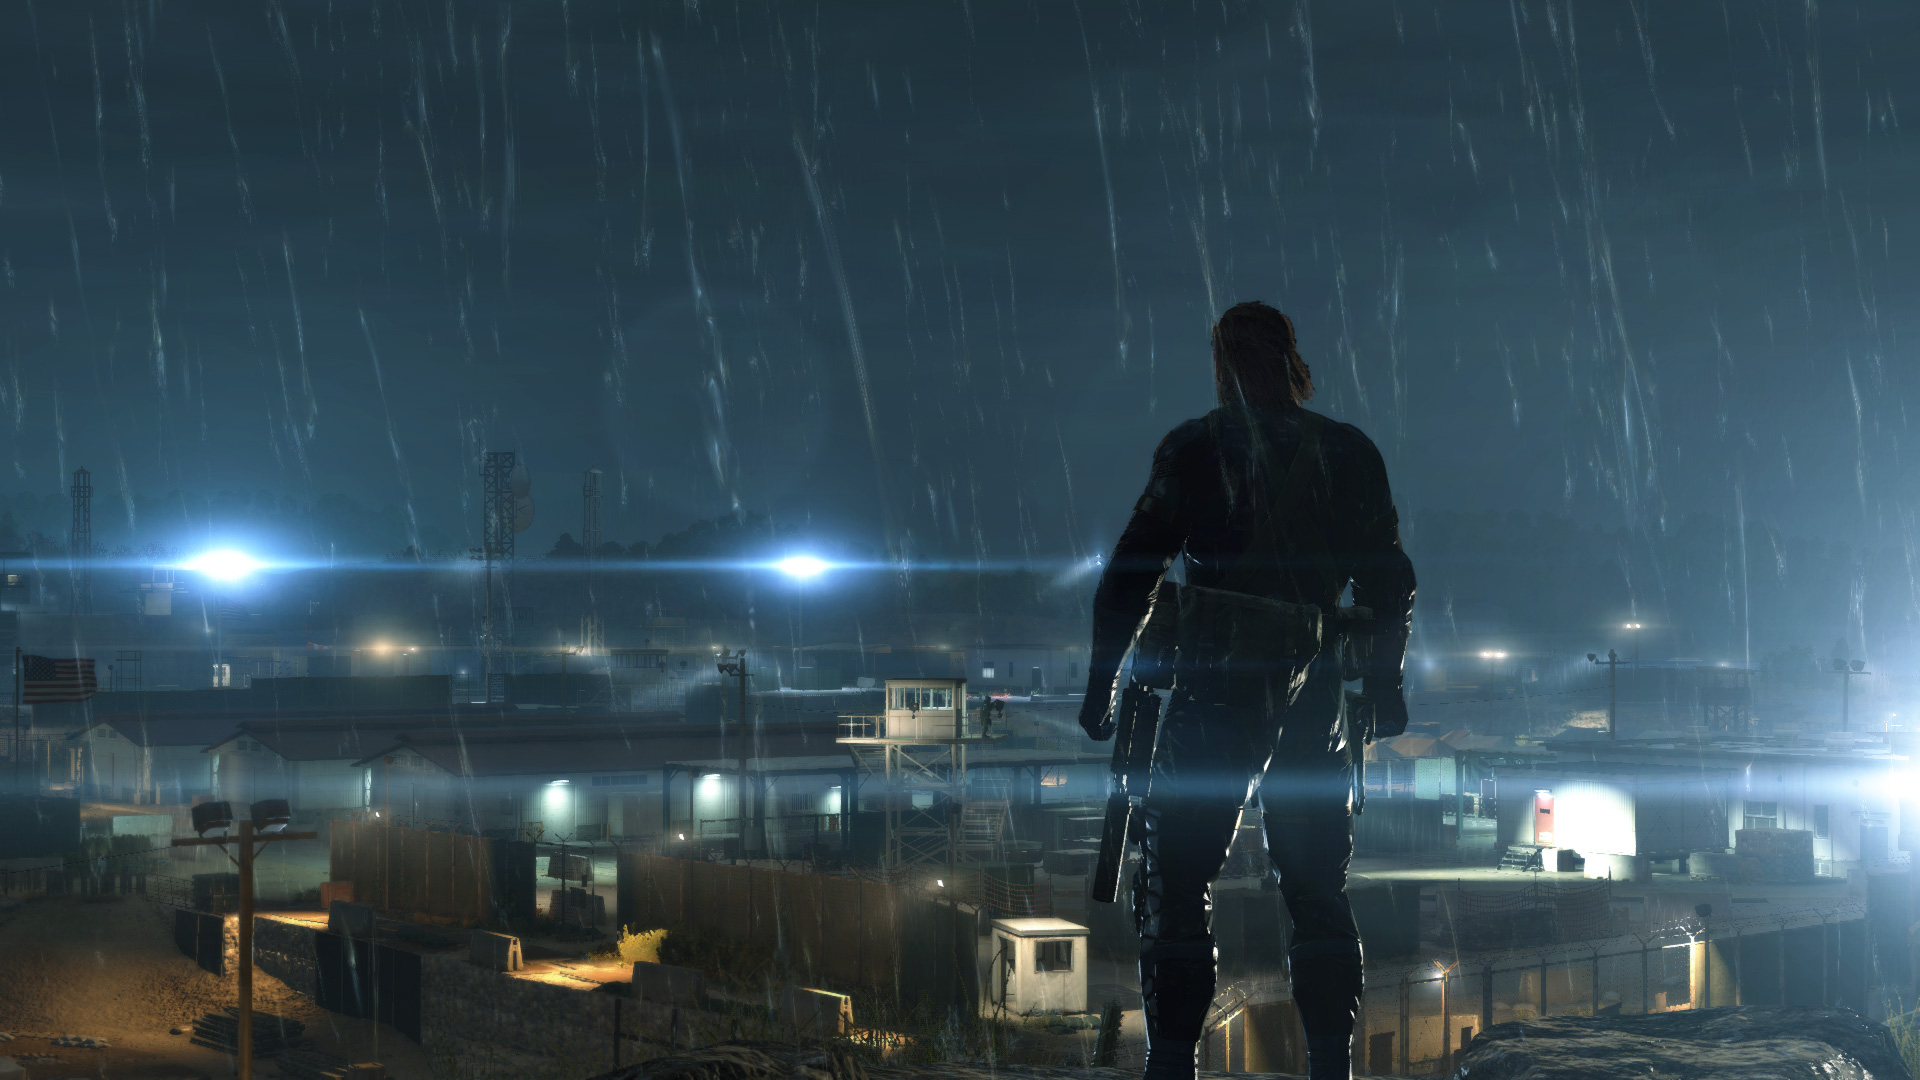 Metal Gear Solid Ground Zeroes Video Game 4k Hd Desktop: Metal Gear Solid V: Ground Zeroes Performance On ROG G771